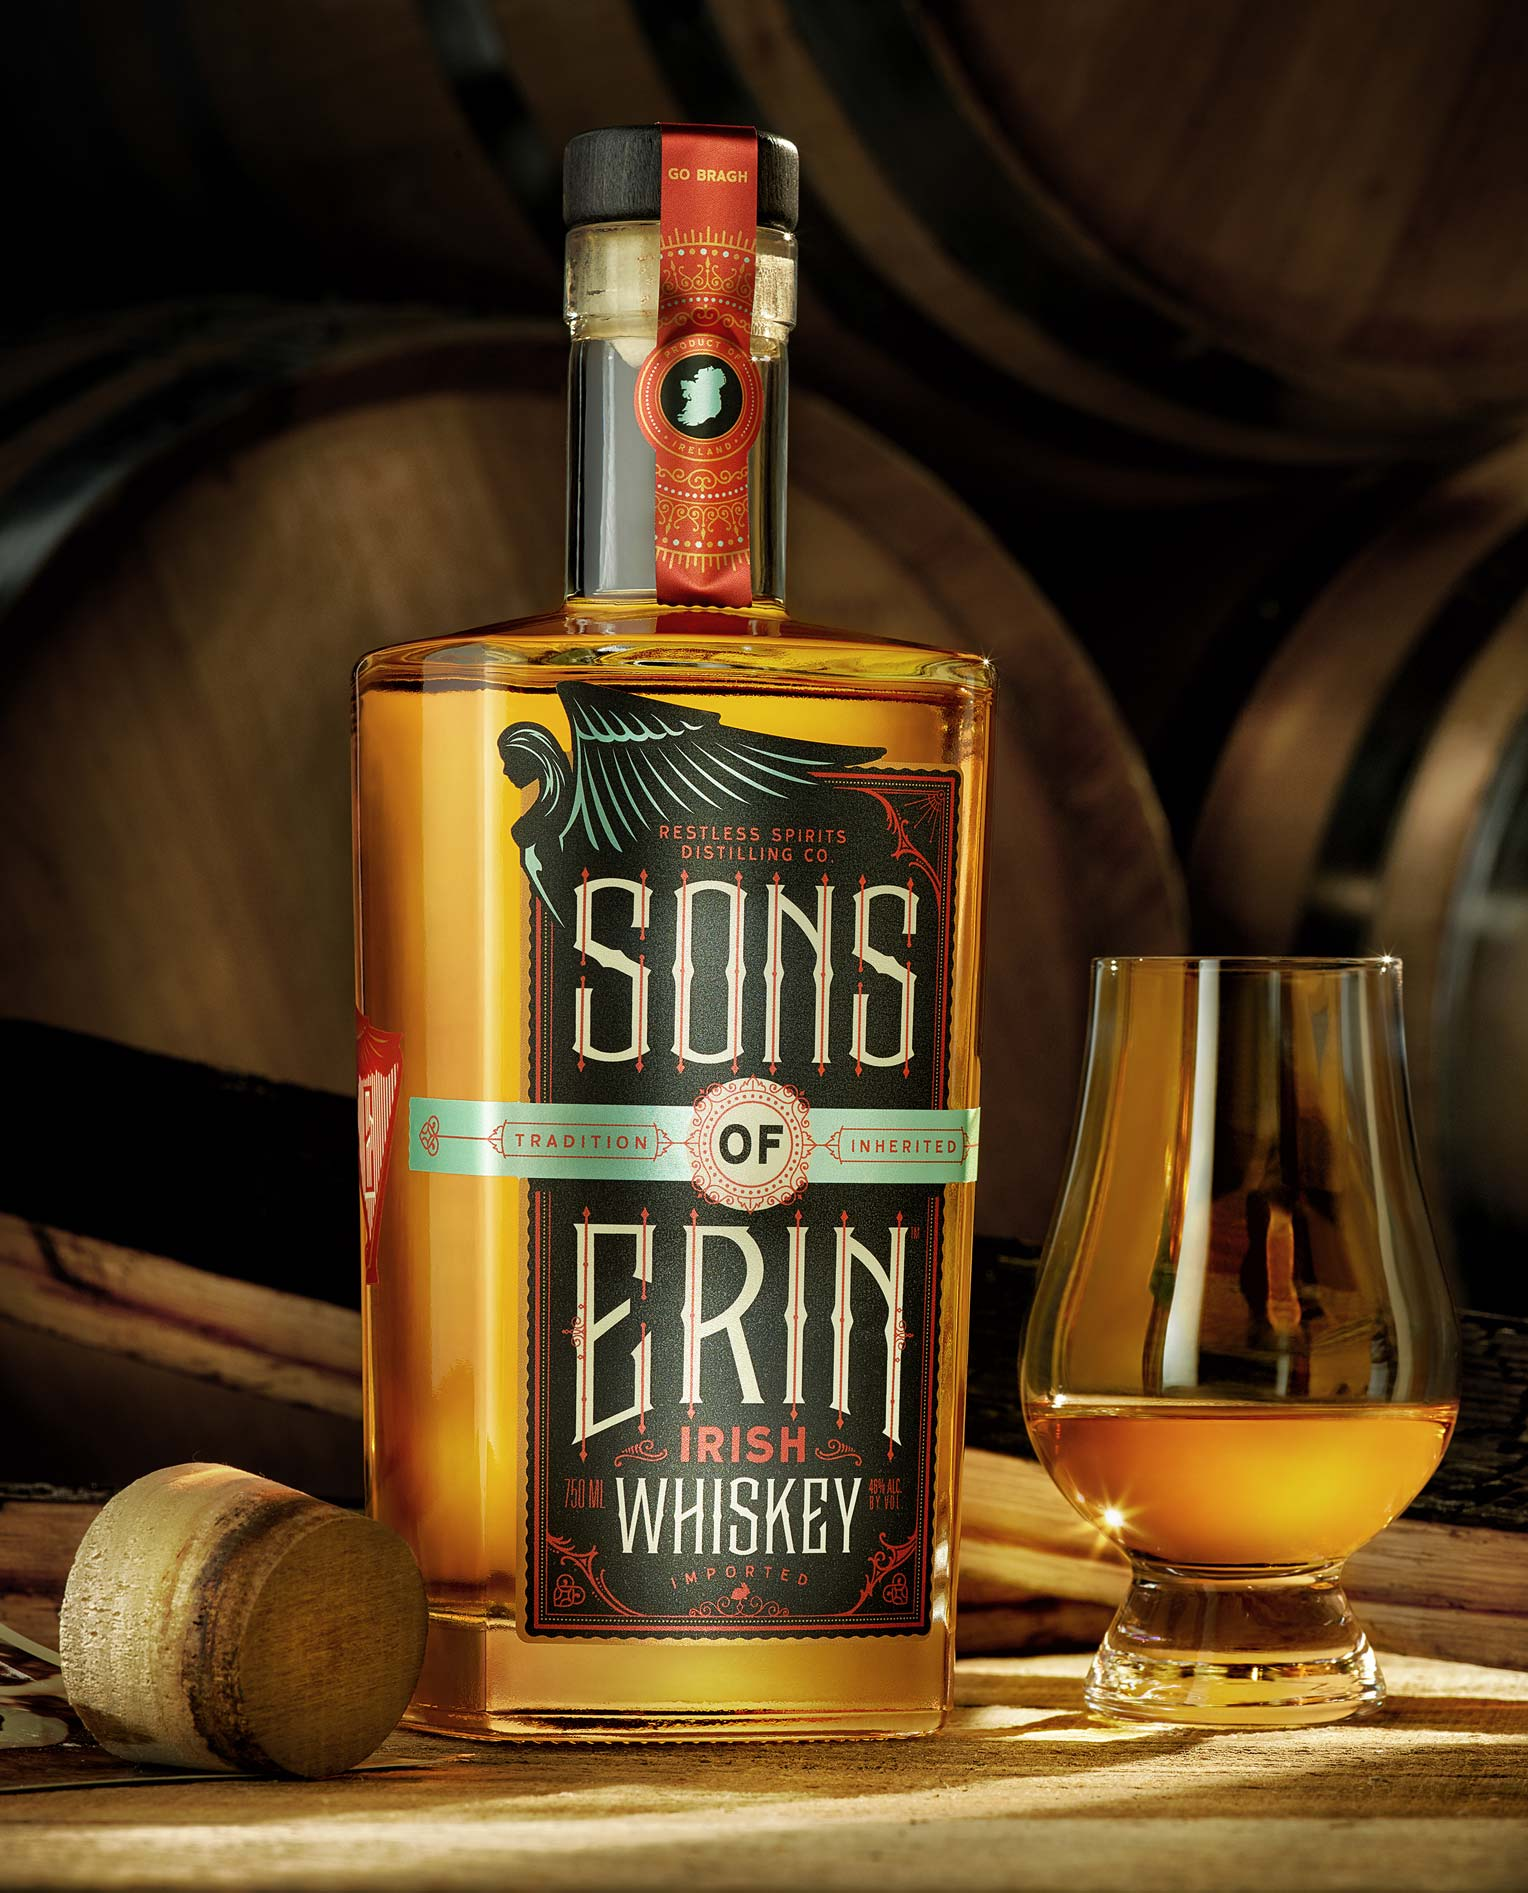 rs-sons-of-erin-irish-whiskey-dominant-photo